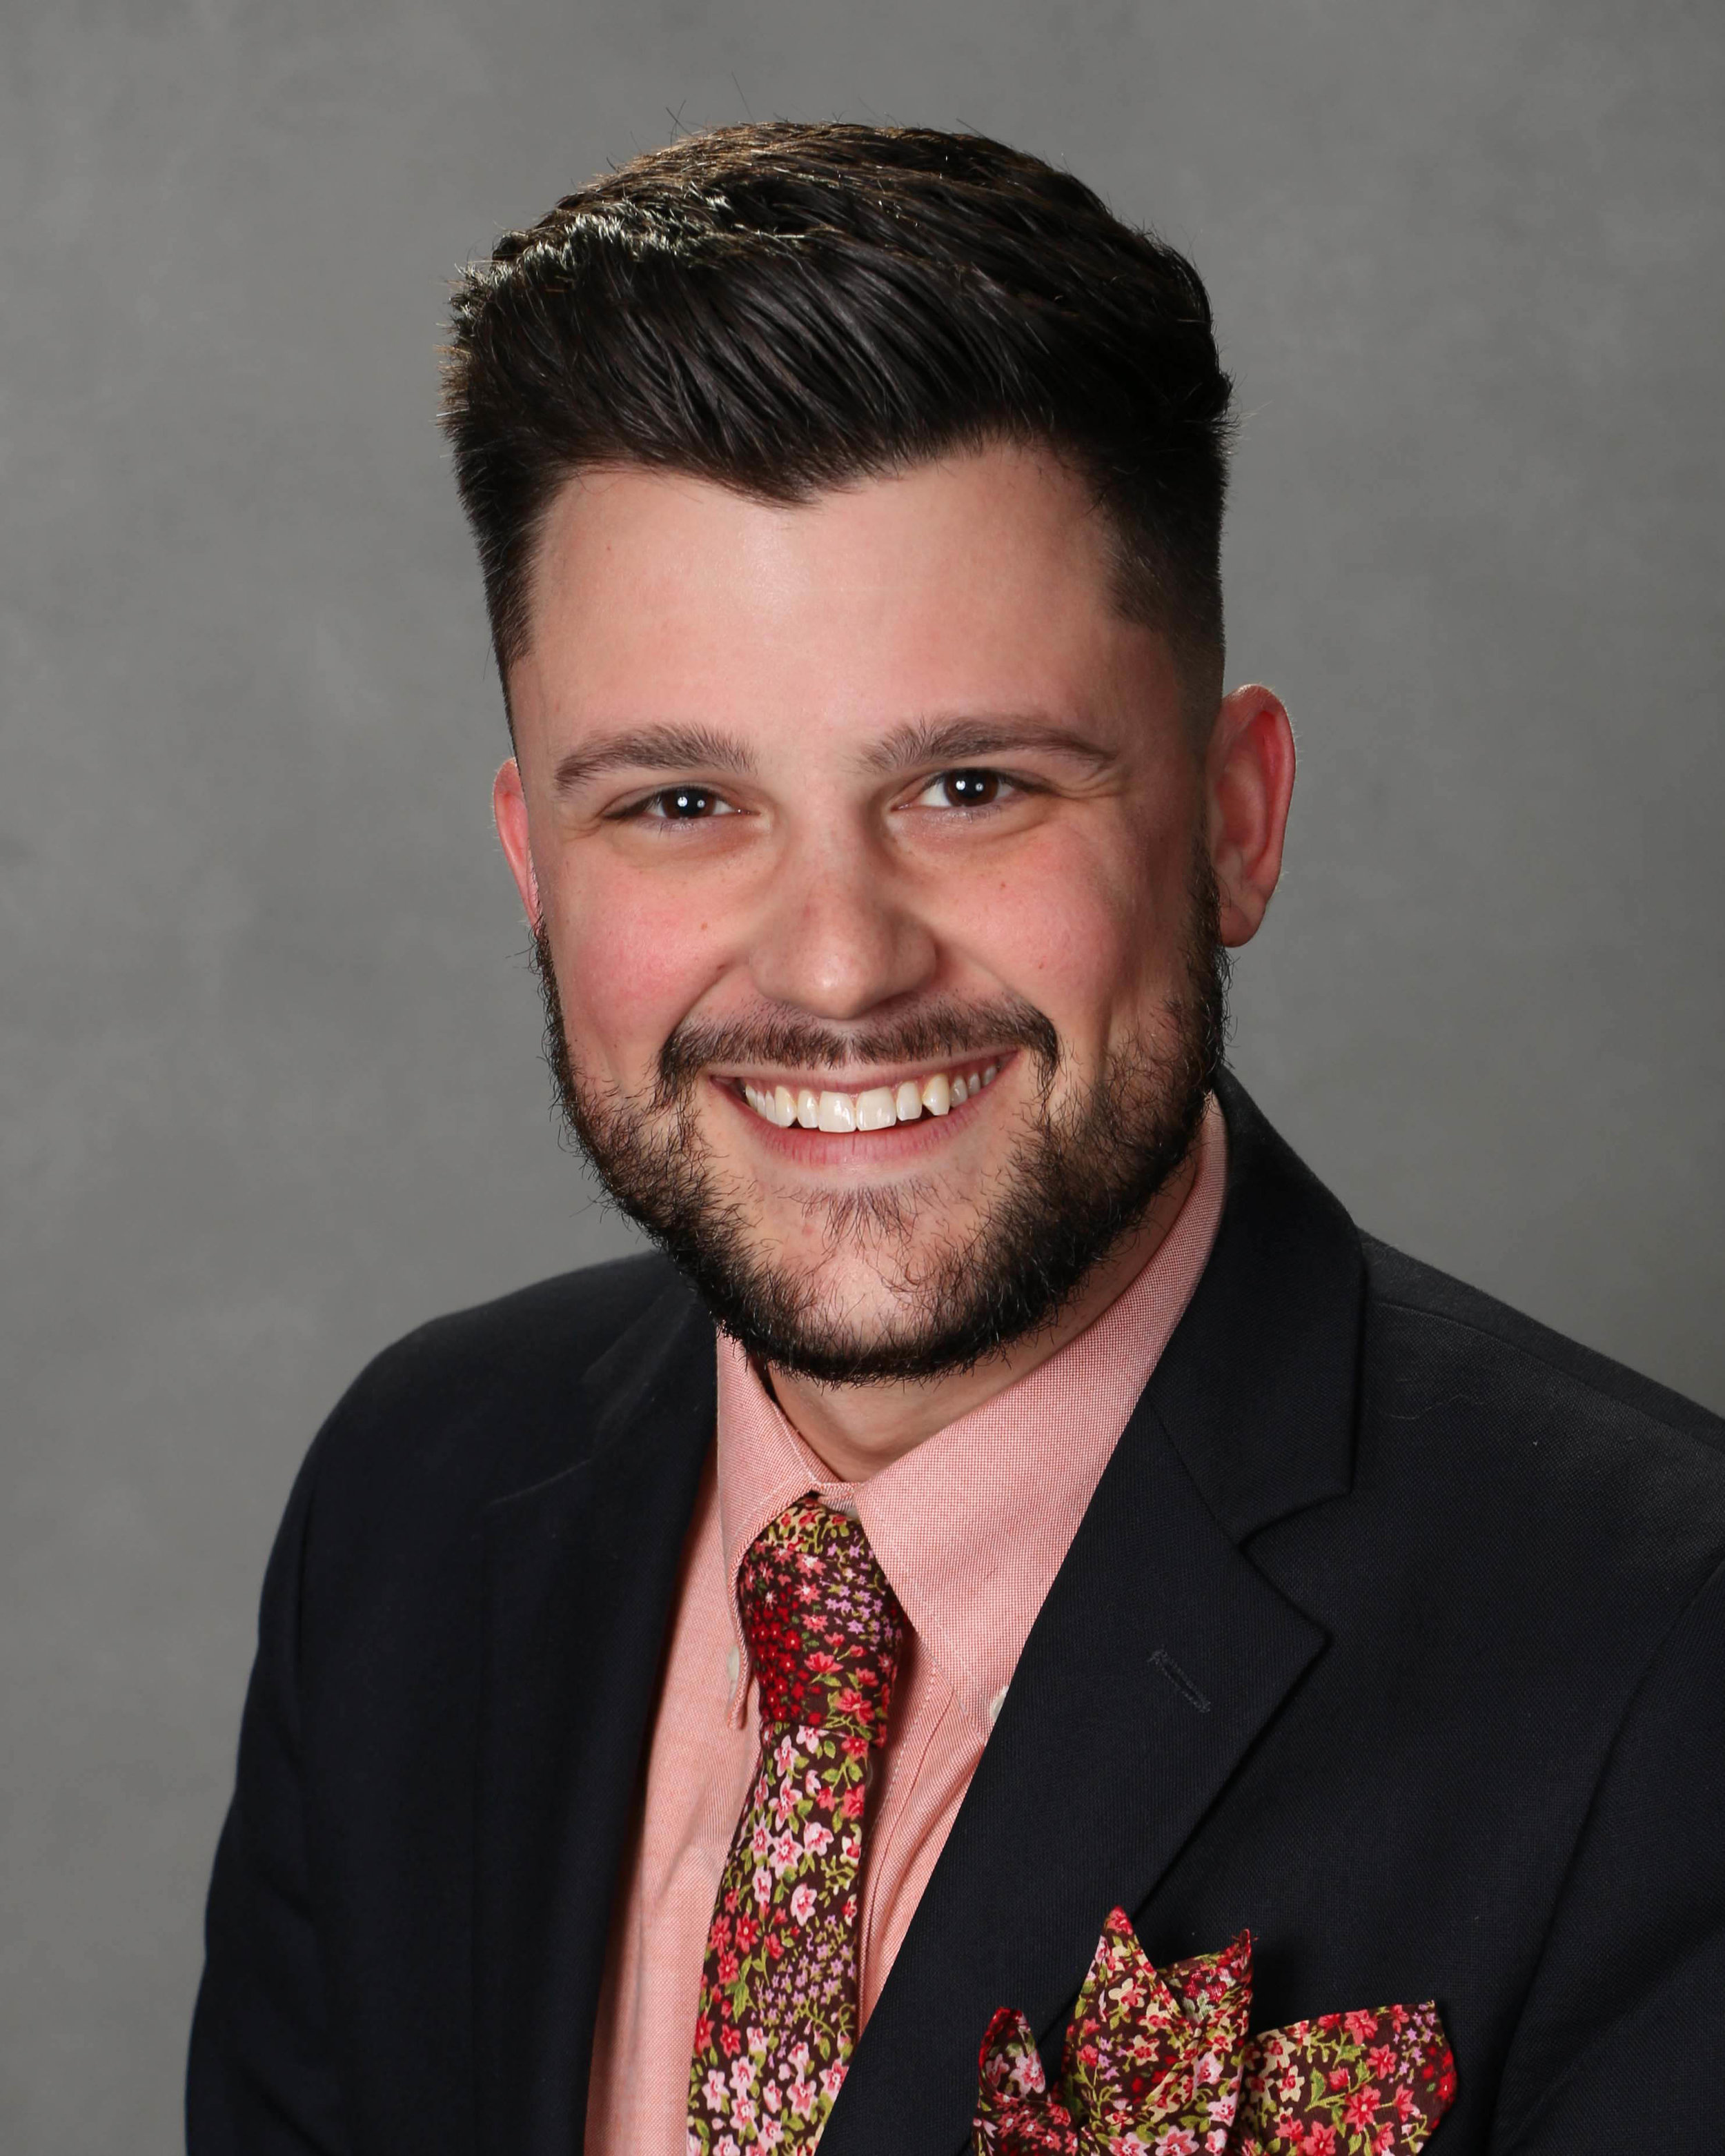 Michael Stephenson – Coordinator of Student Life & Orientation Texas A&M University- Texarkana